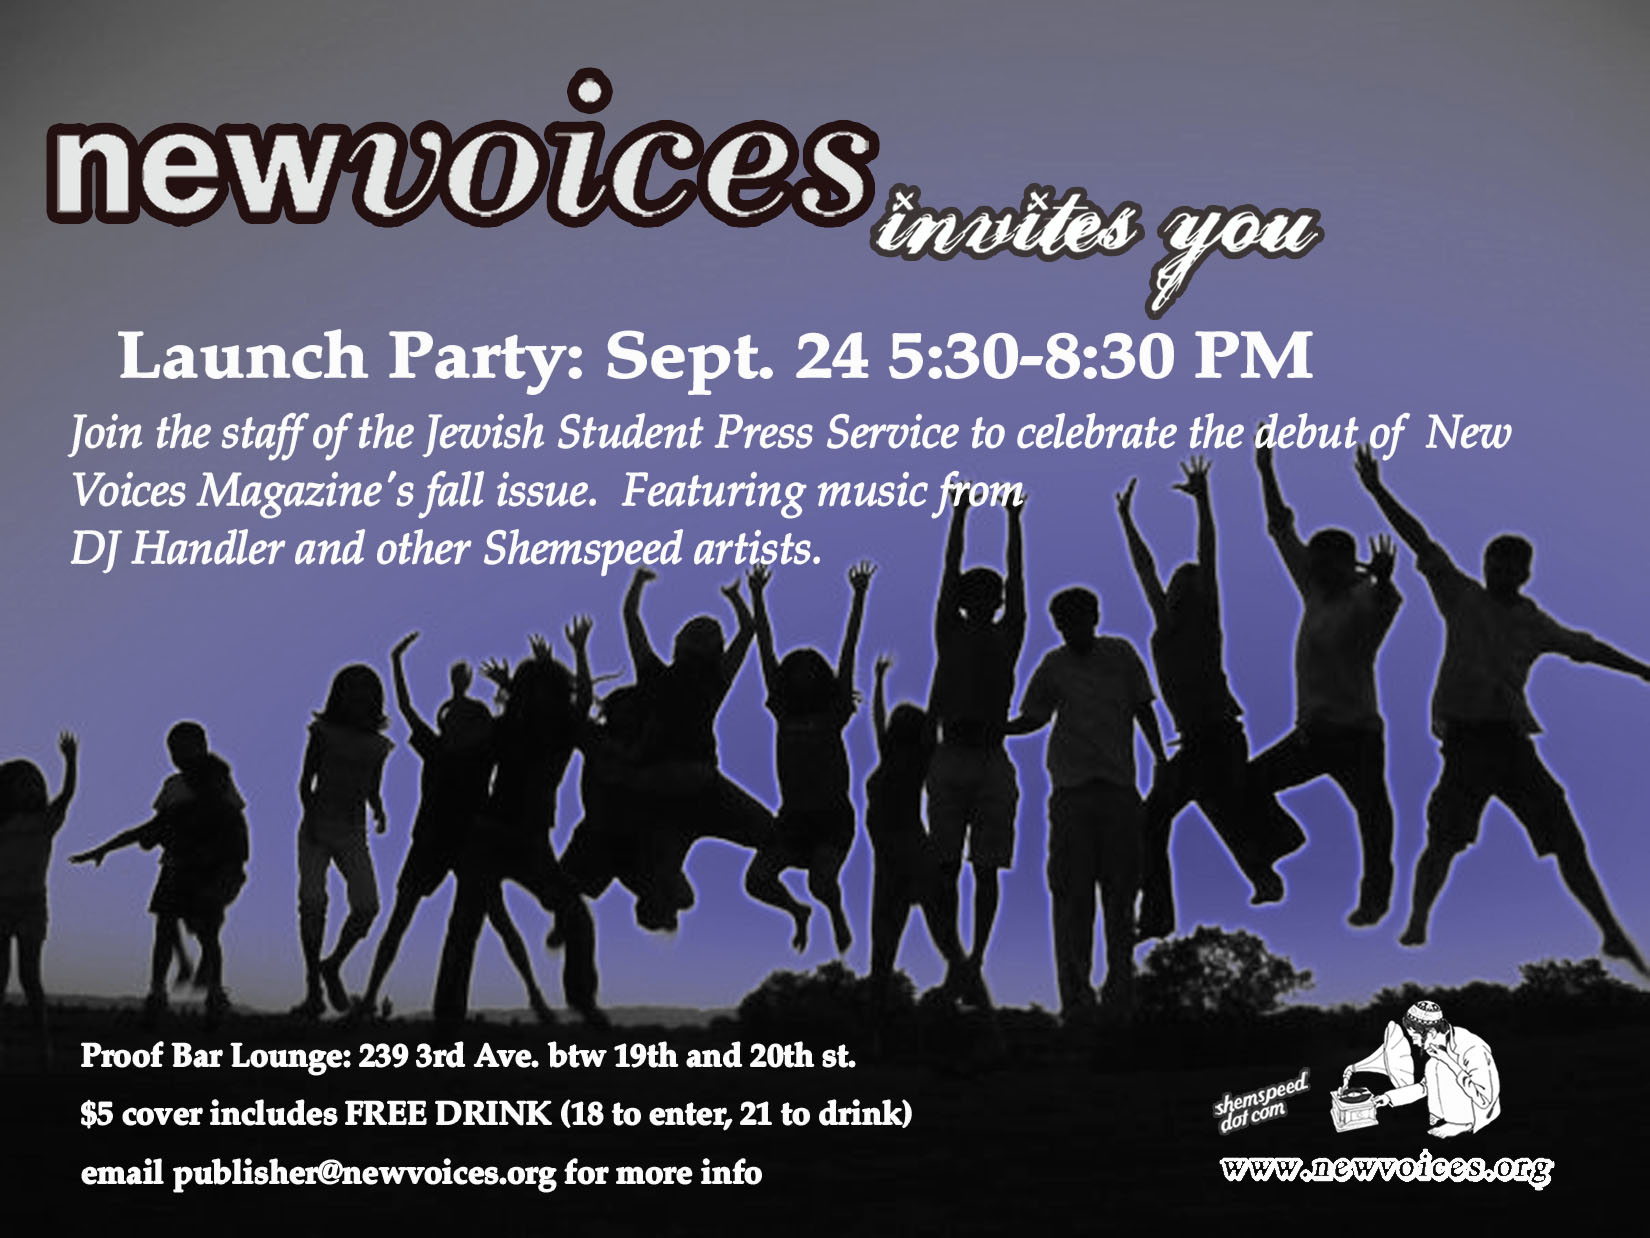 New Voices launch flyer